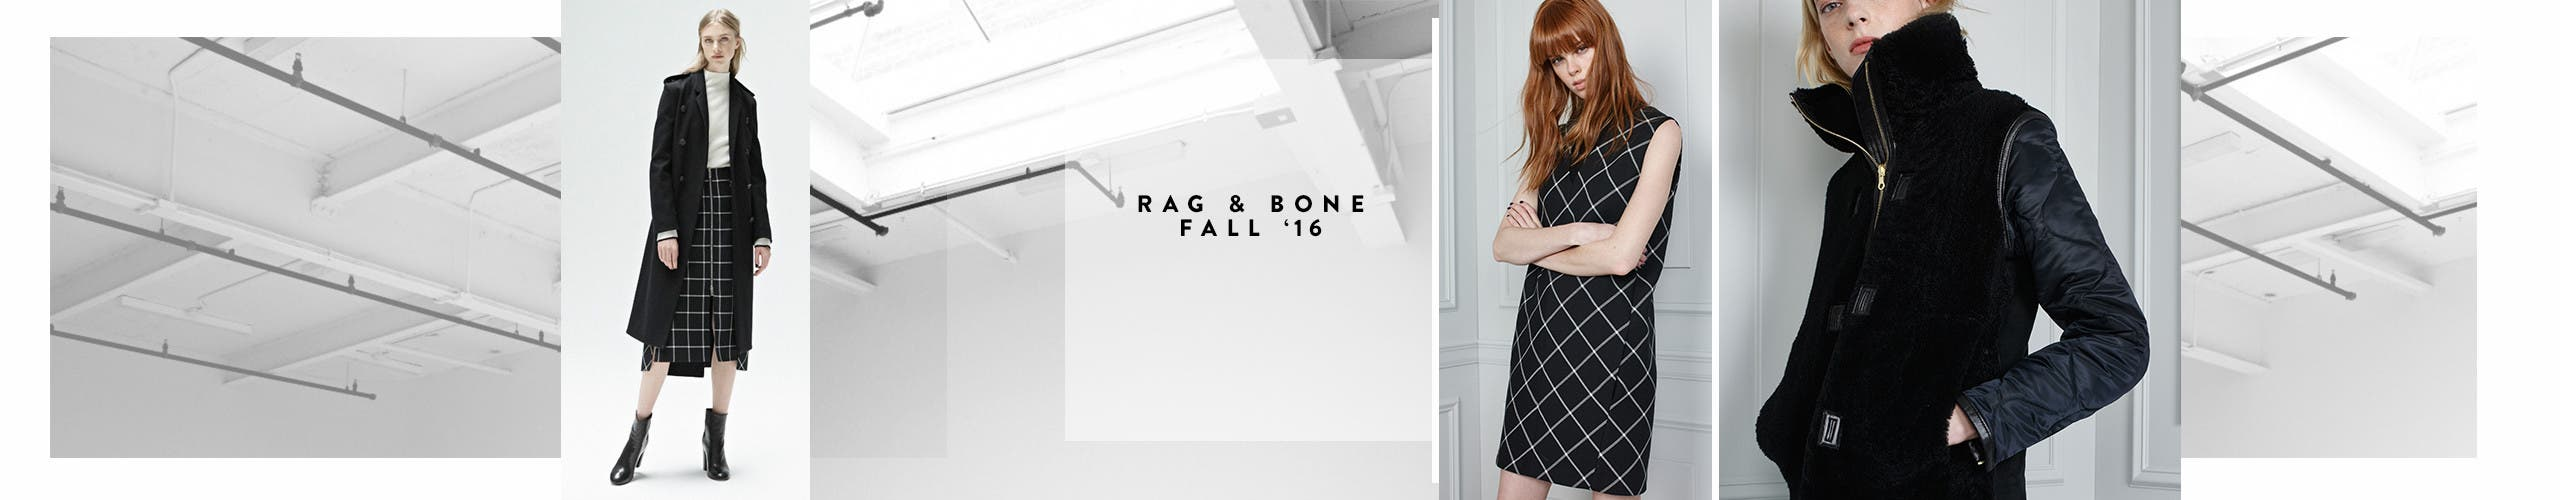 rag & bone fall collection for women.